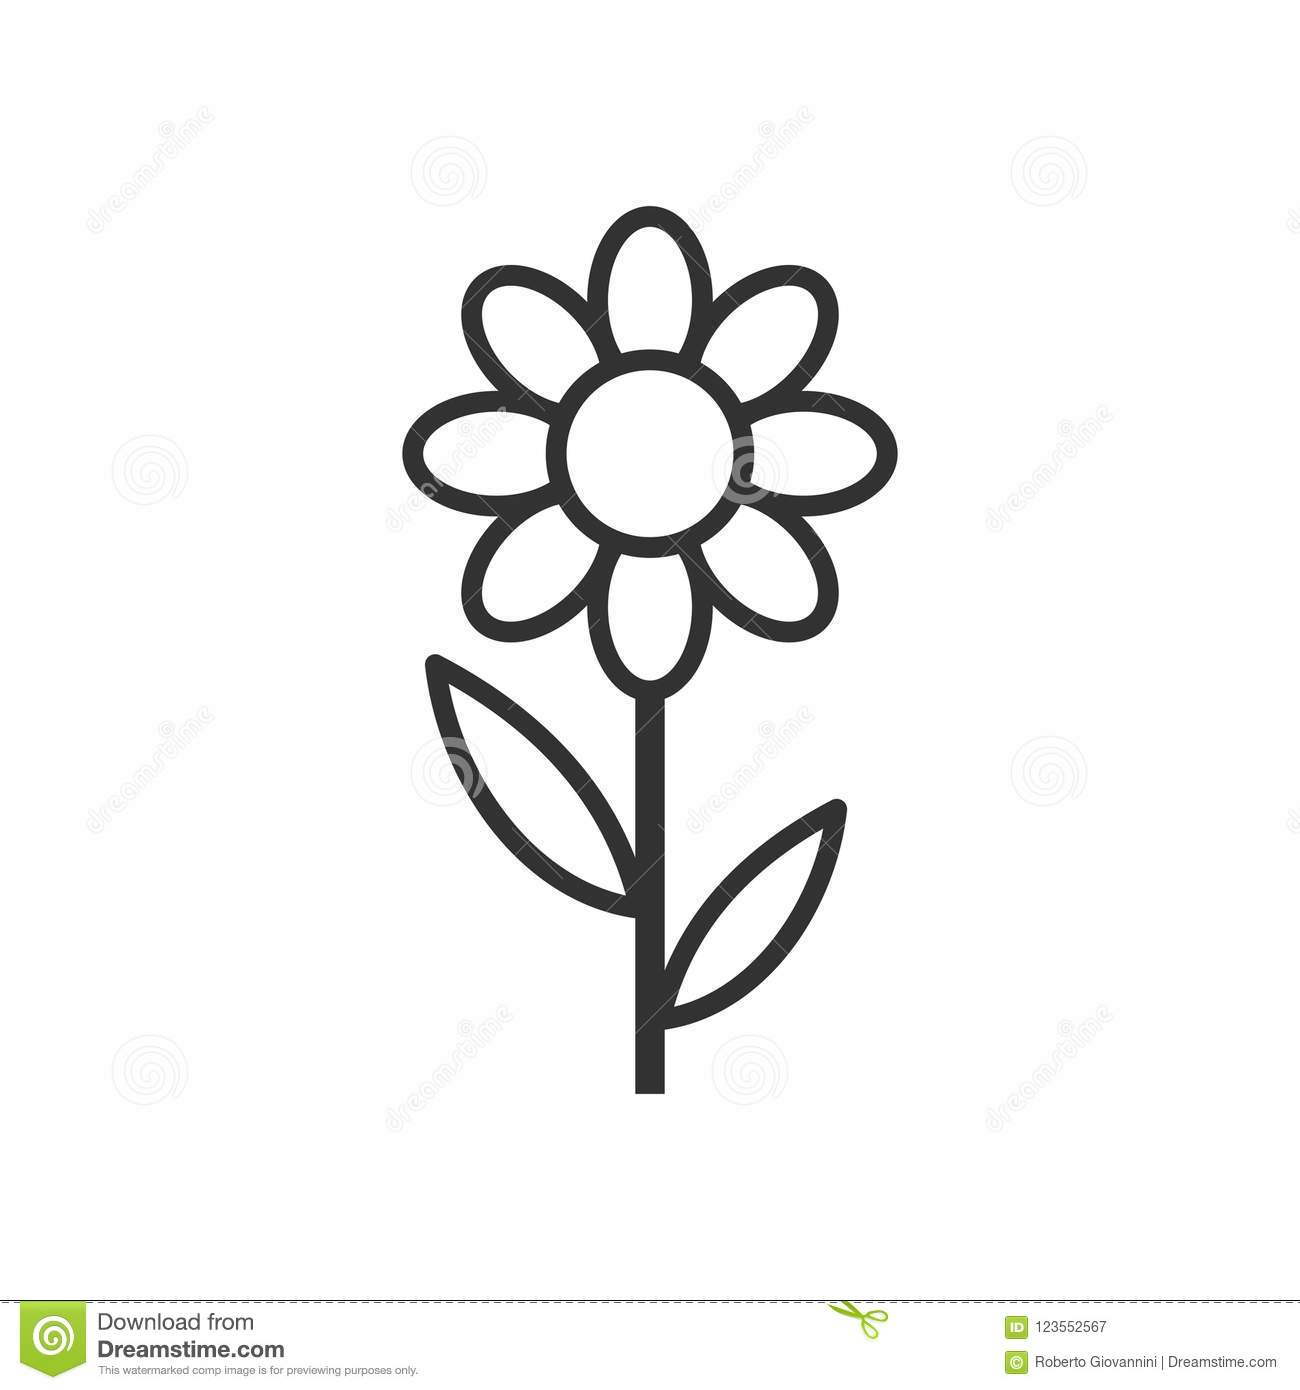 Daisy Flower Outline Flat Icon on White